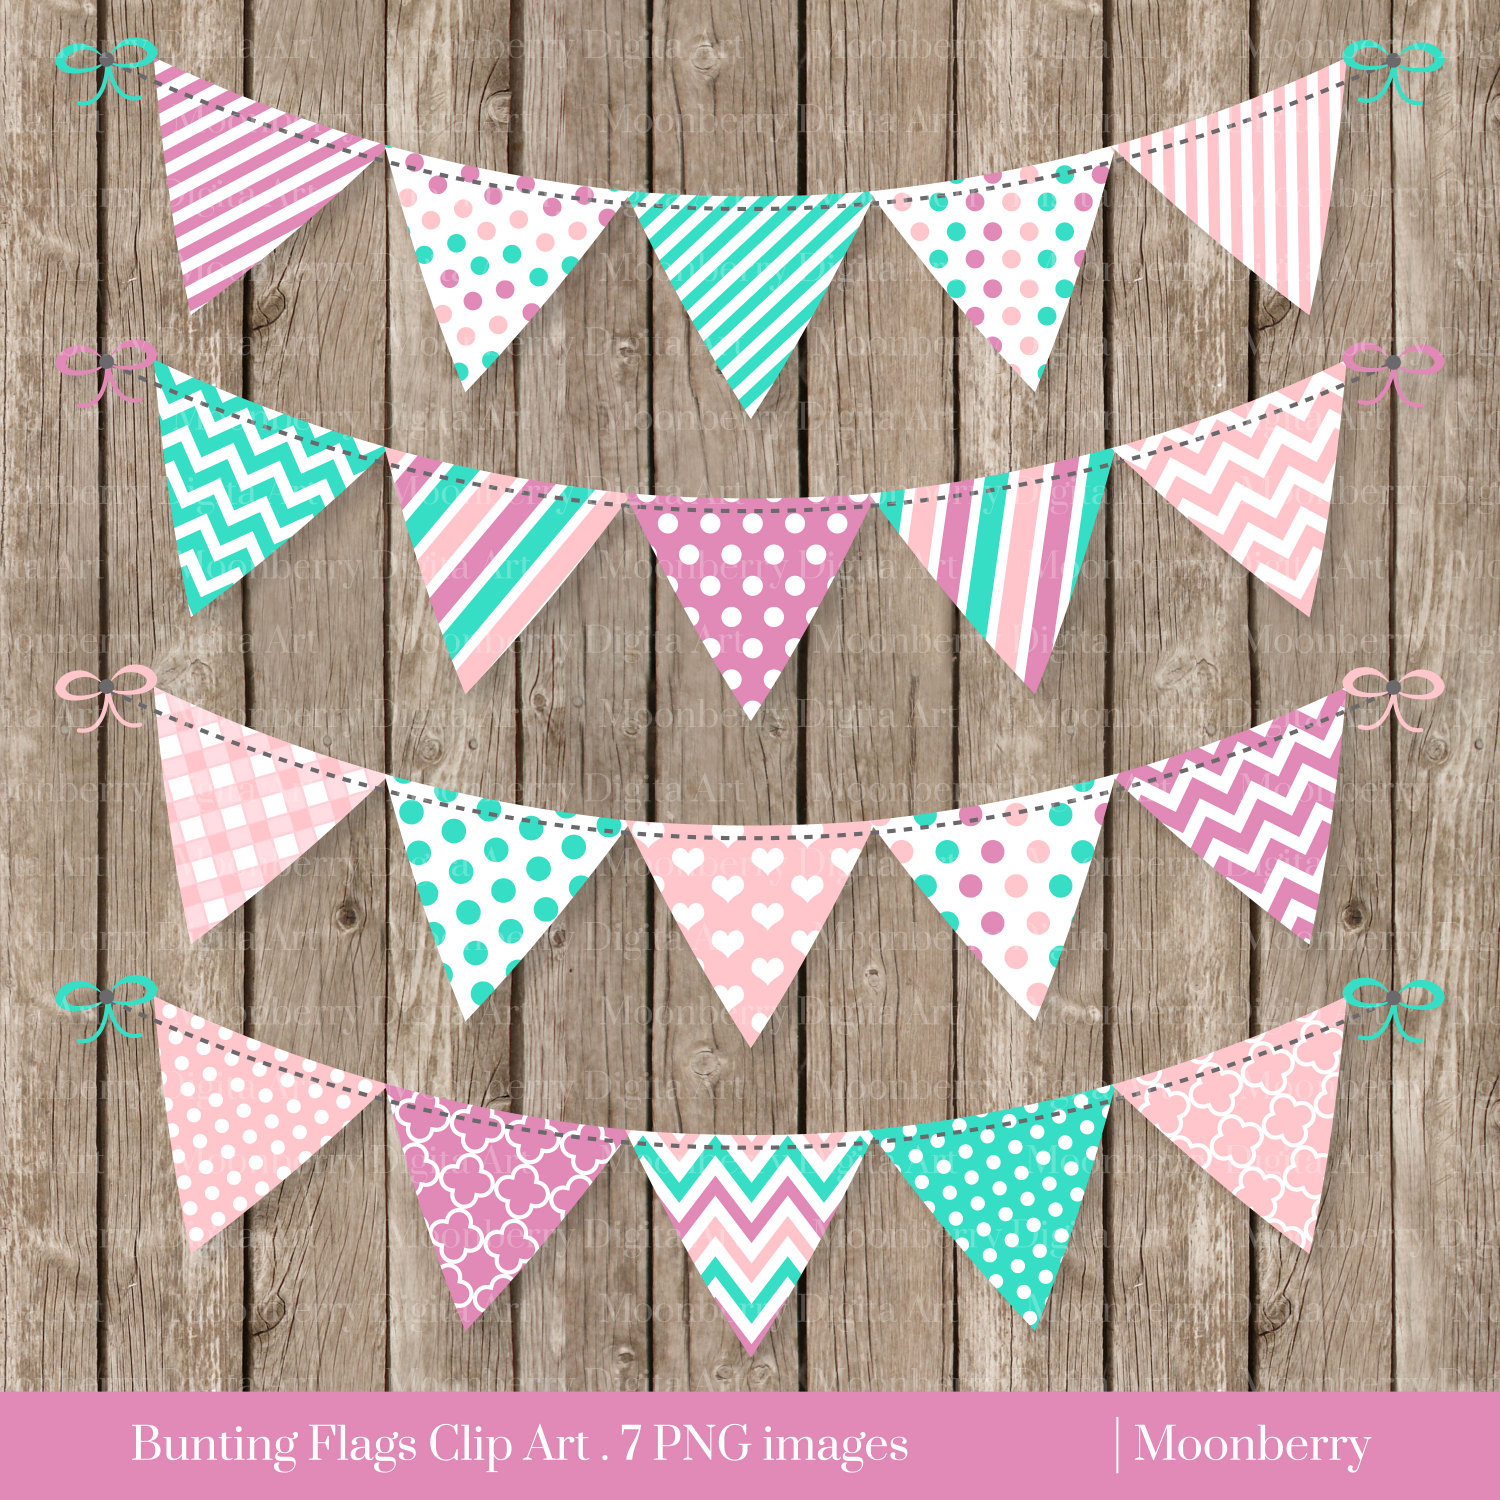 Peach clipart bunting Patterned Banners Use CLIPART